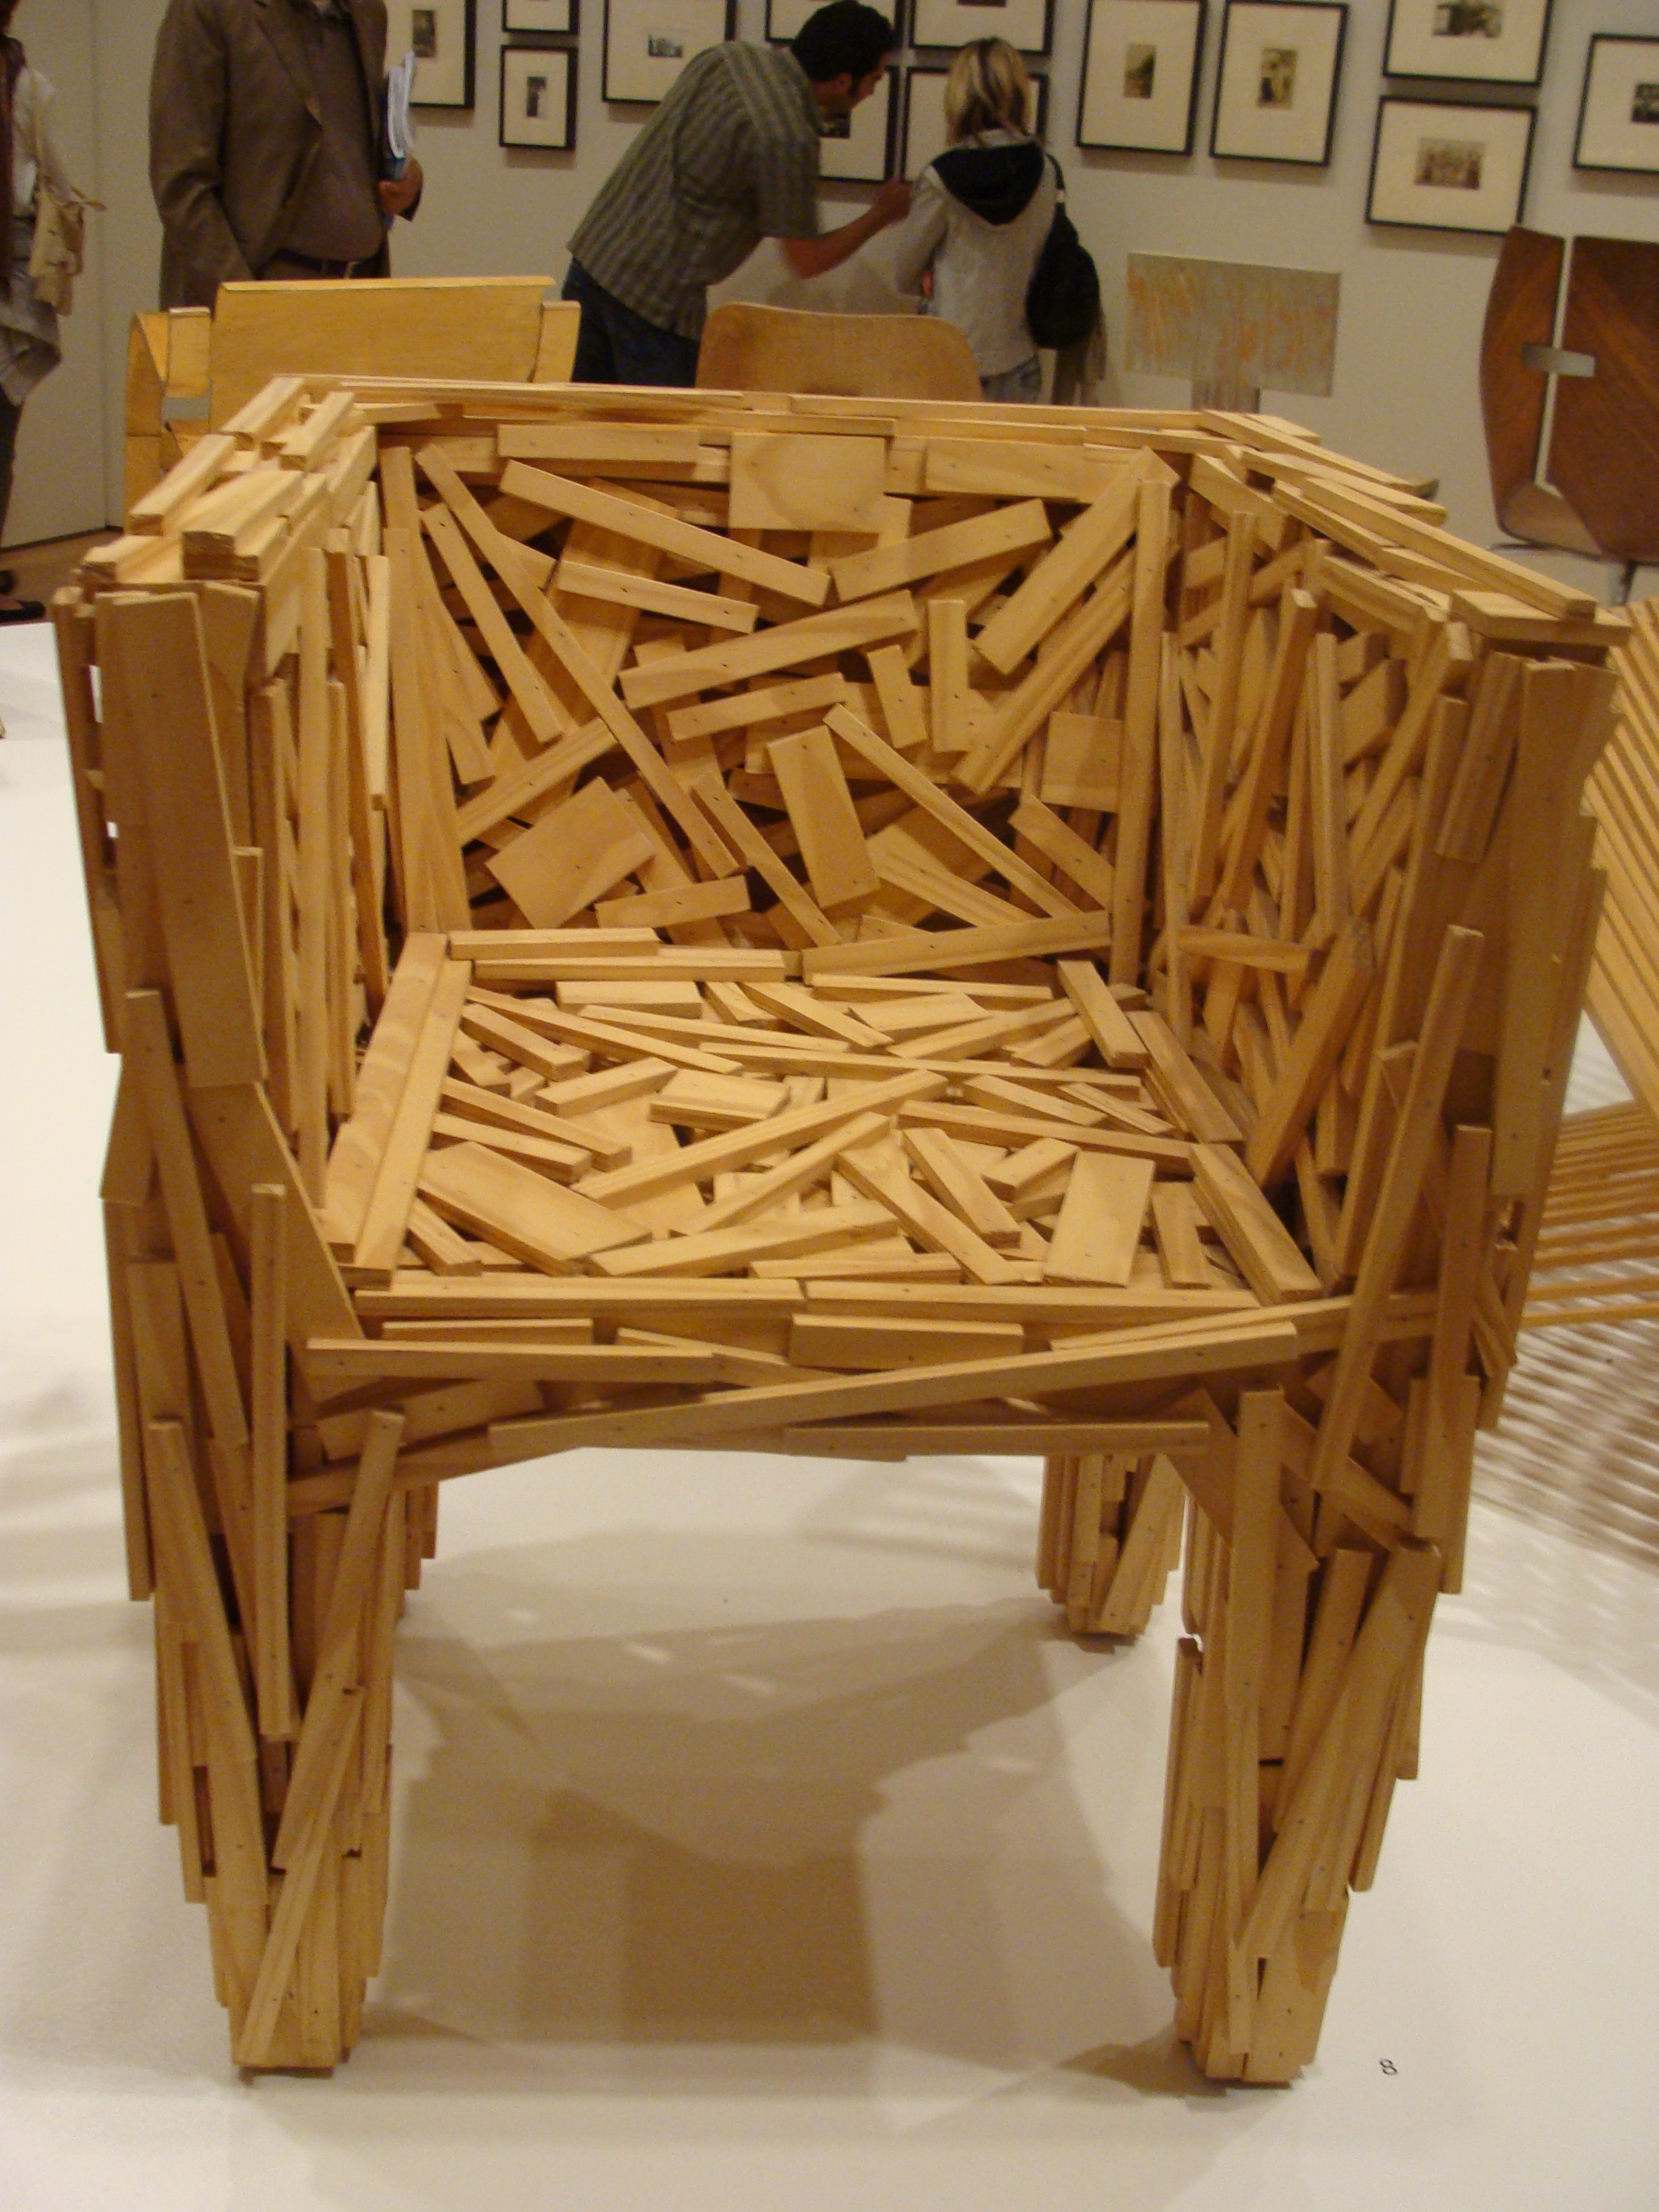 chair design sketchup scandinavian chairs wood download simple modern wooden designs plans diy industry woodworking | sassy30xbm